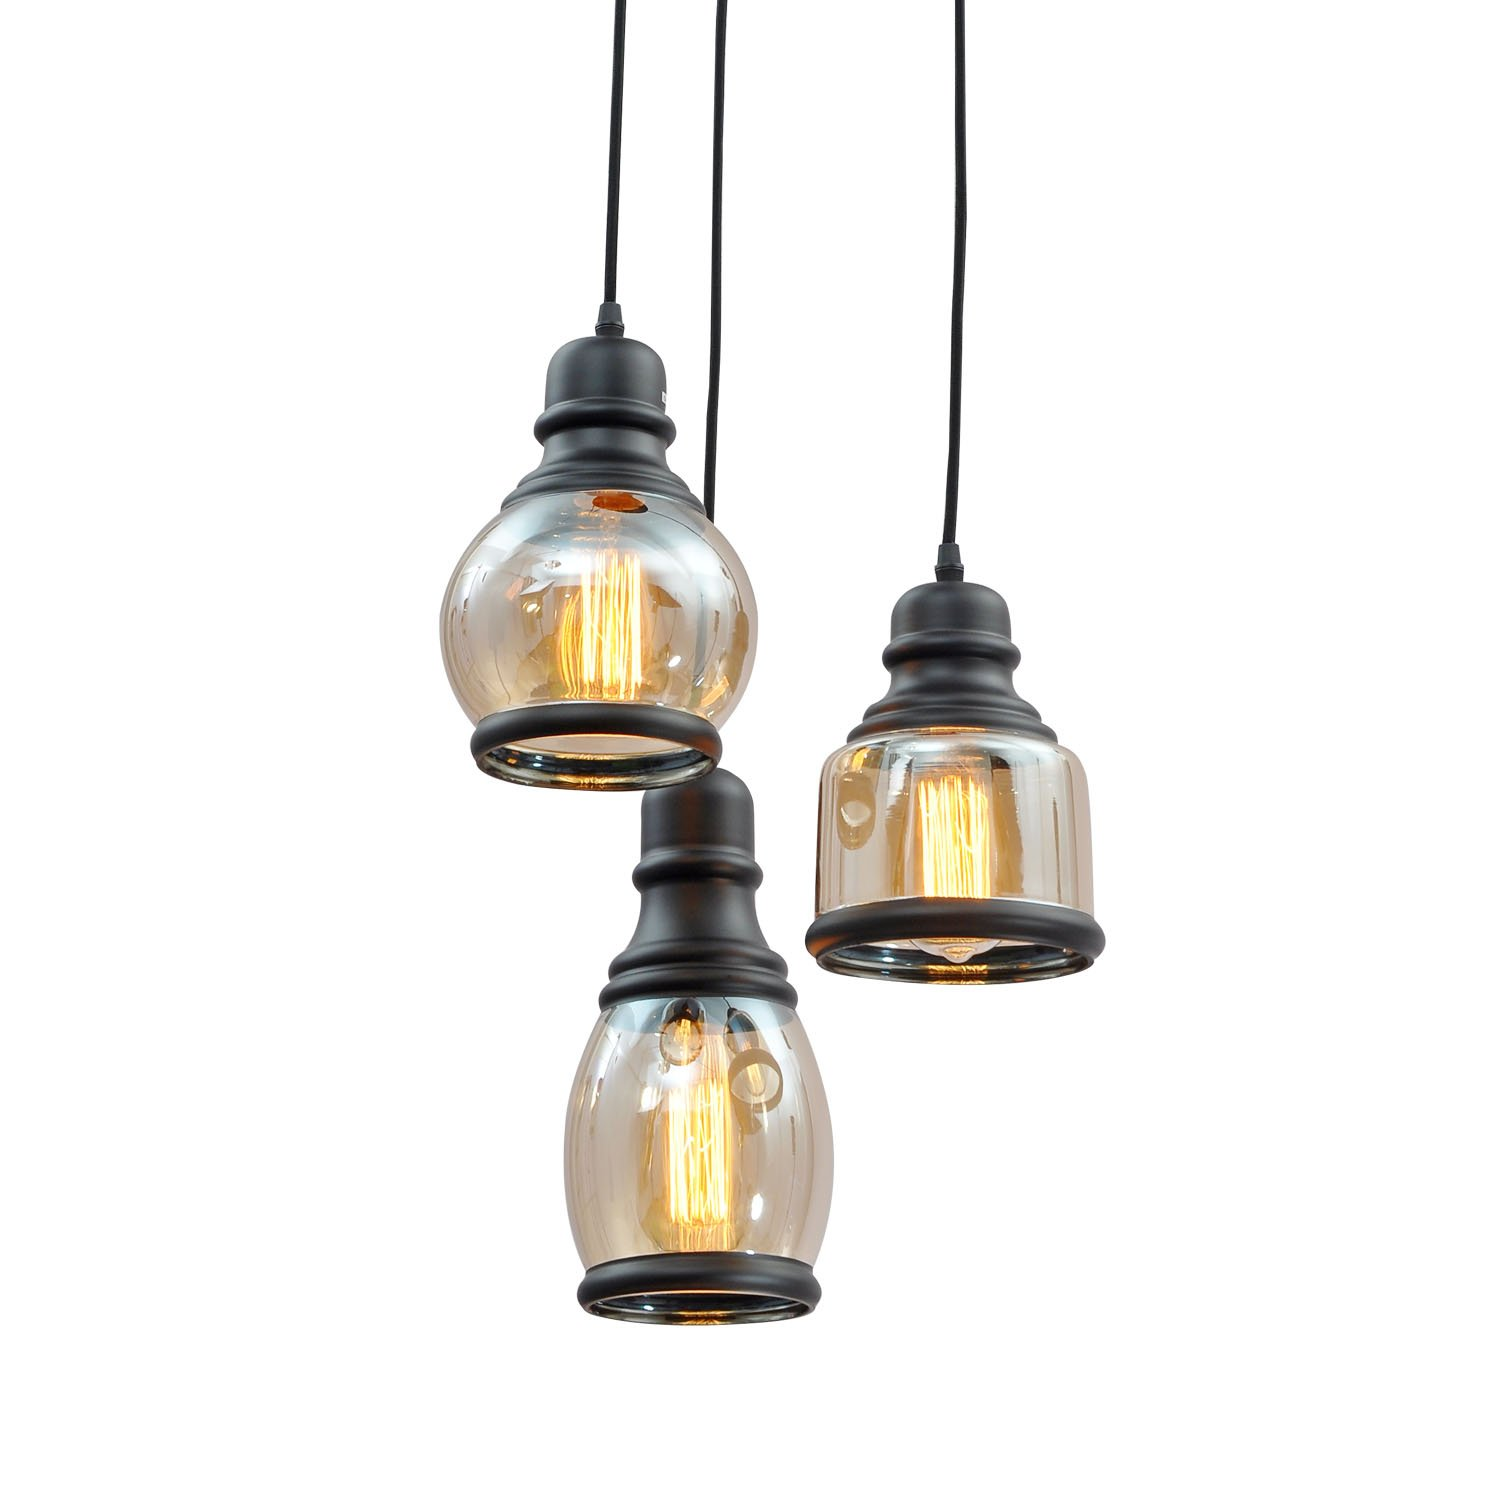 Unitary Brand Antique Black Shade Glass Jar Pendant Light Max 120W With 3 Lights Painted Finish by Unitary